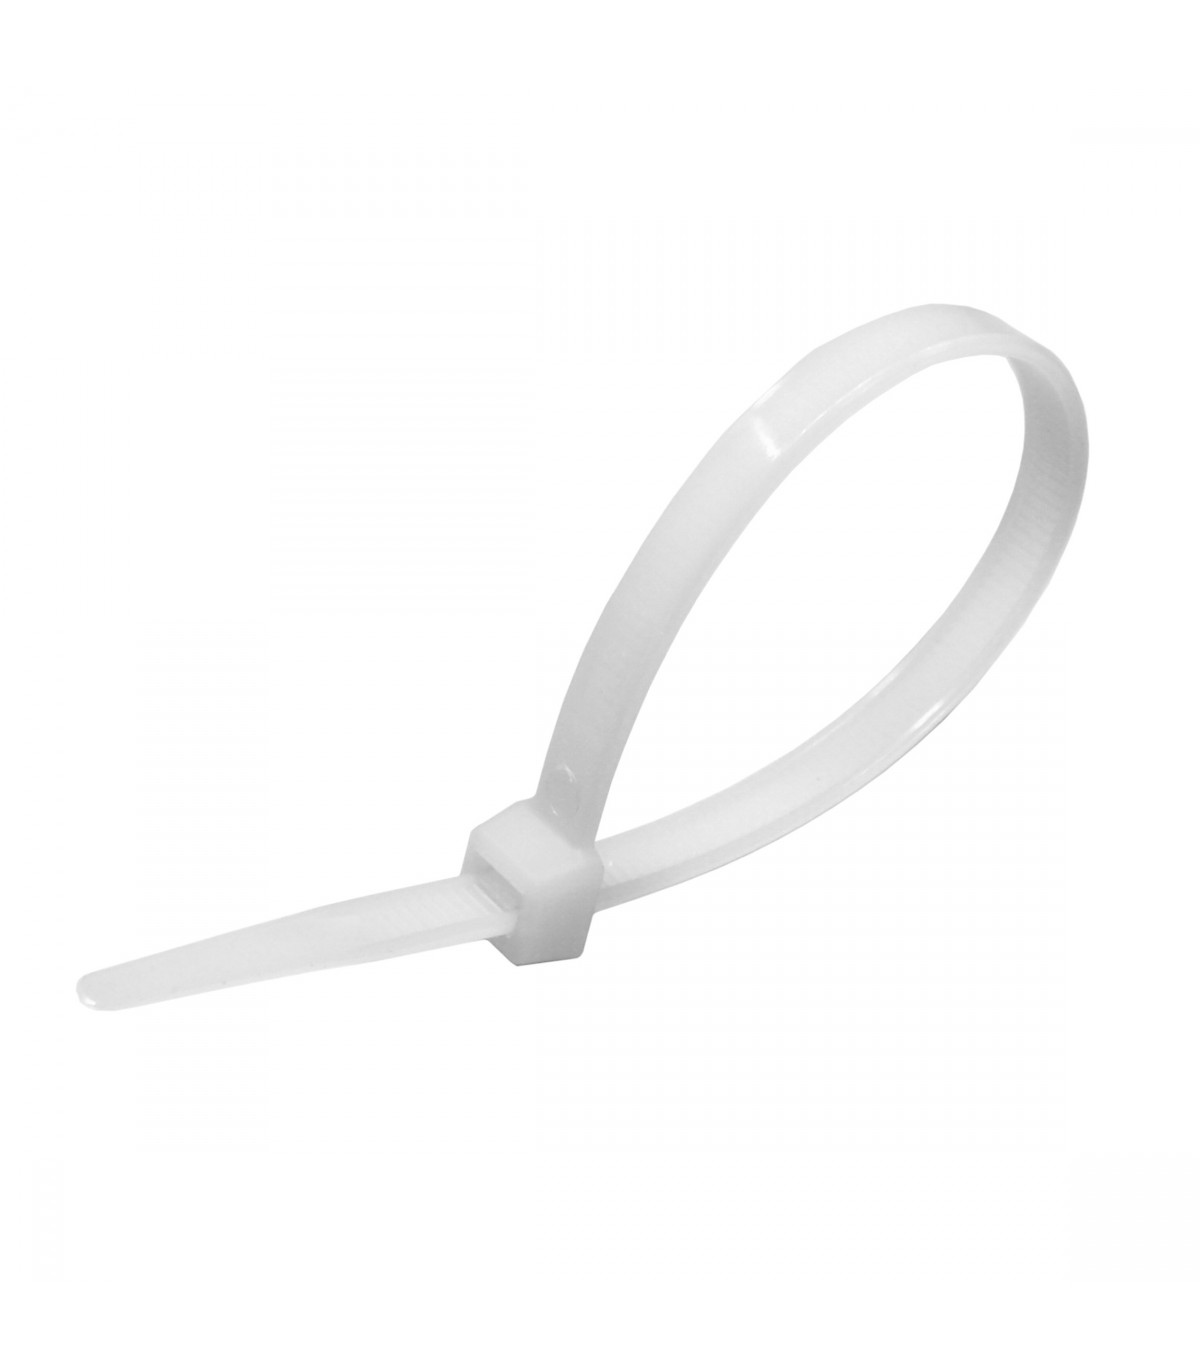 25 5 5 Quot White Cable Ties